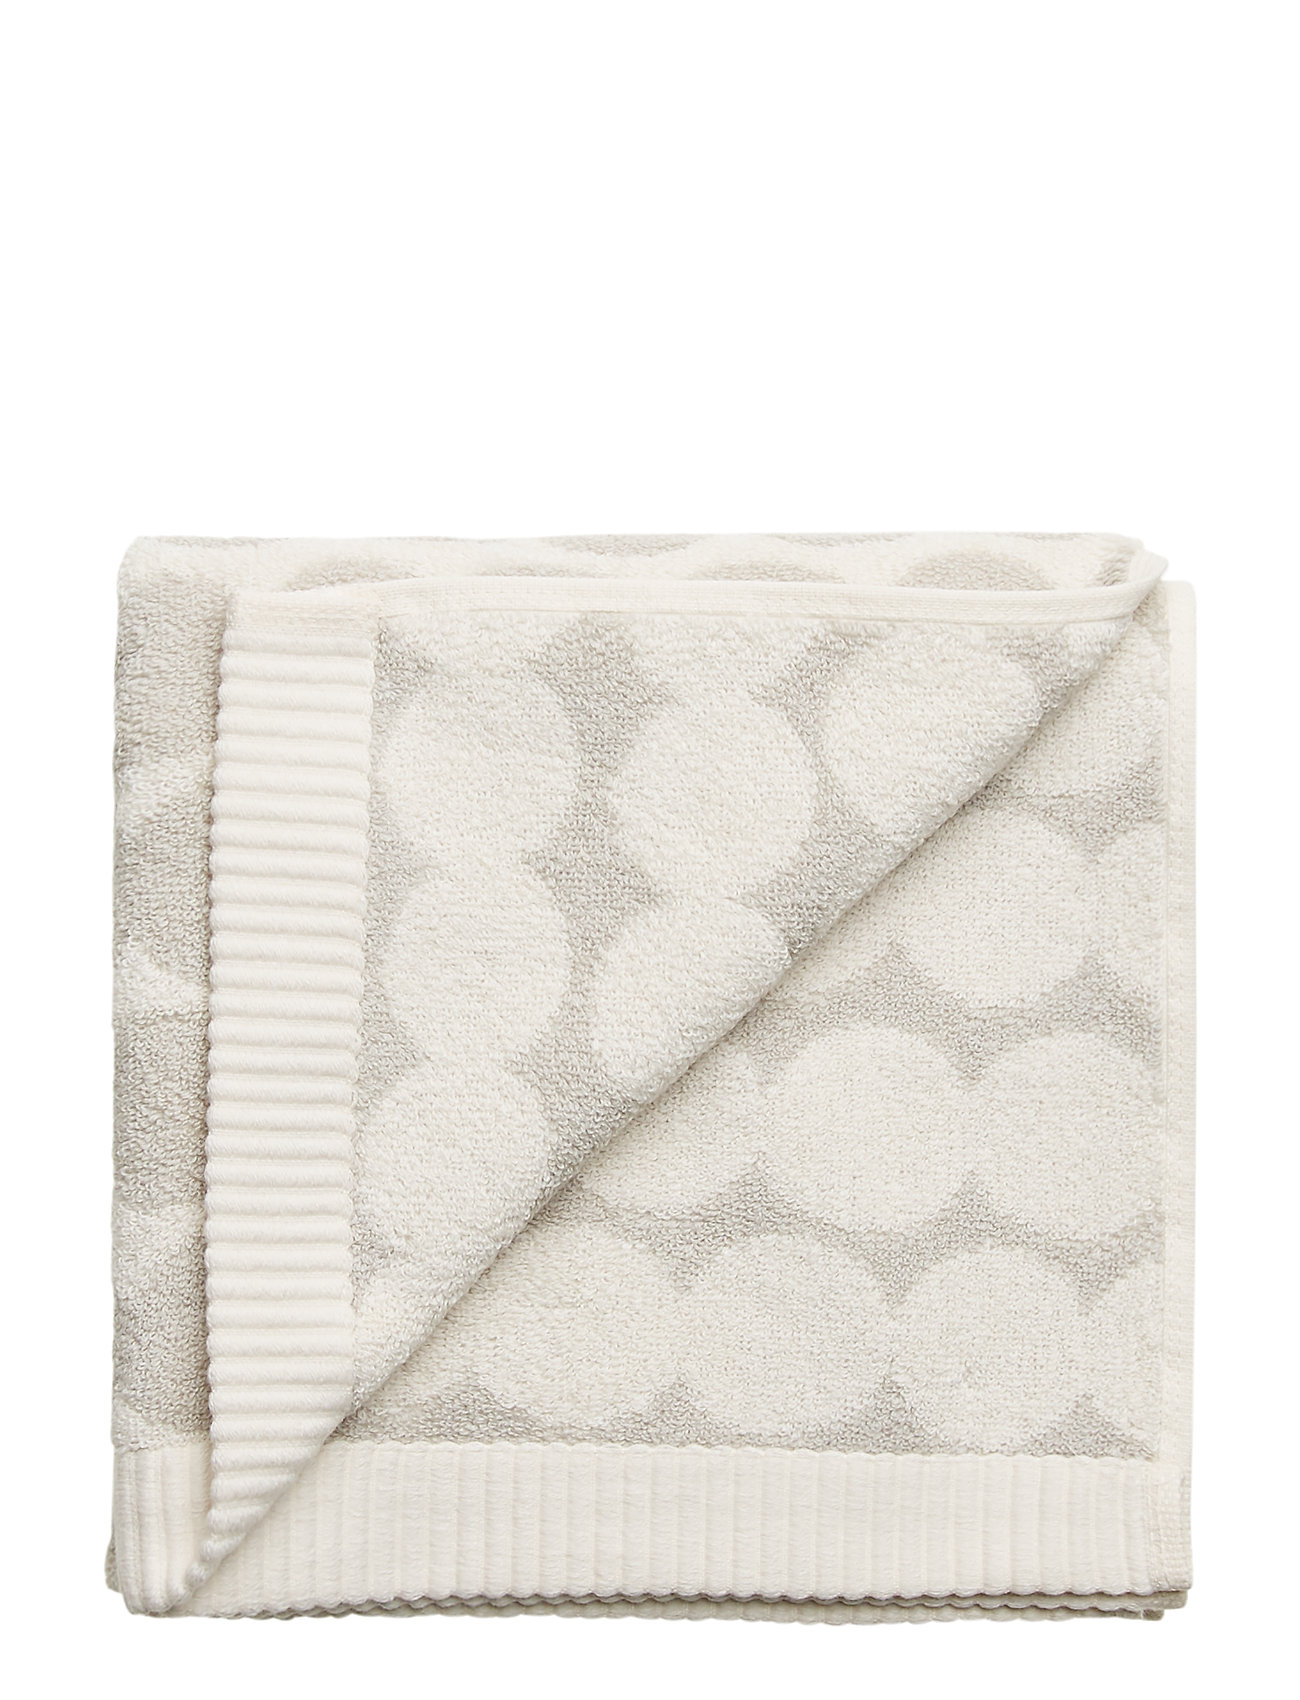 Marimekko Home RÄSYMATTO HAND TOWEL - WHITE, LIGHT GREY